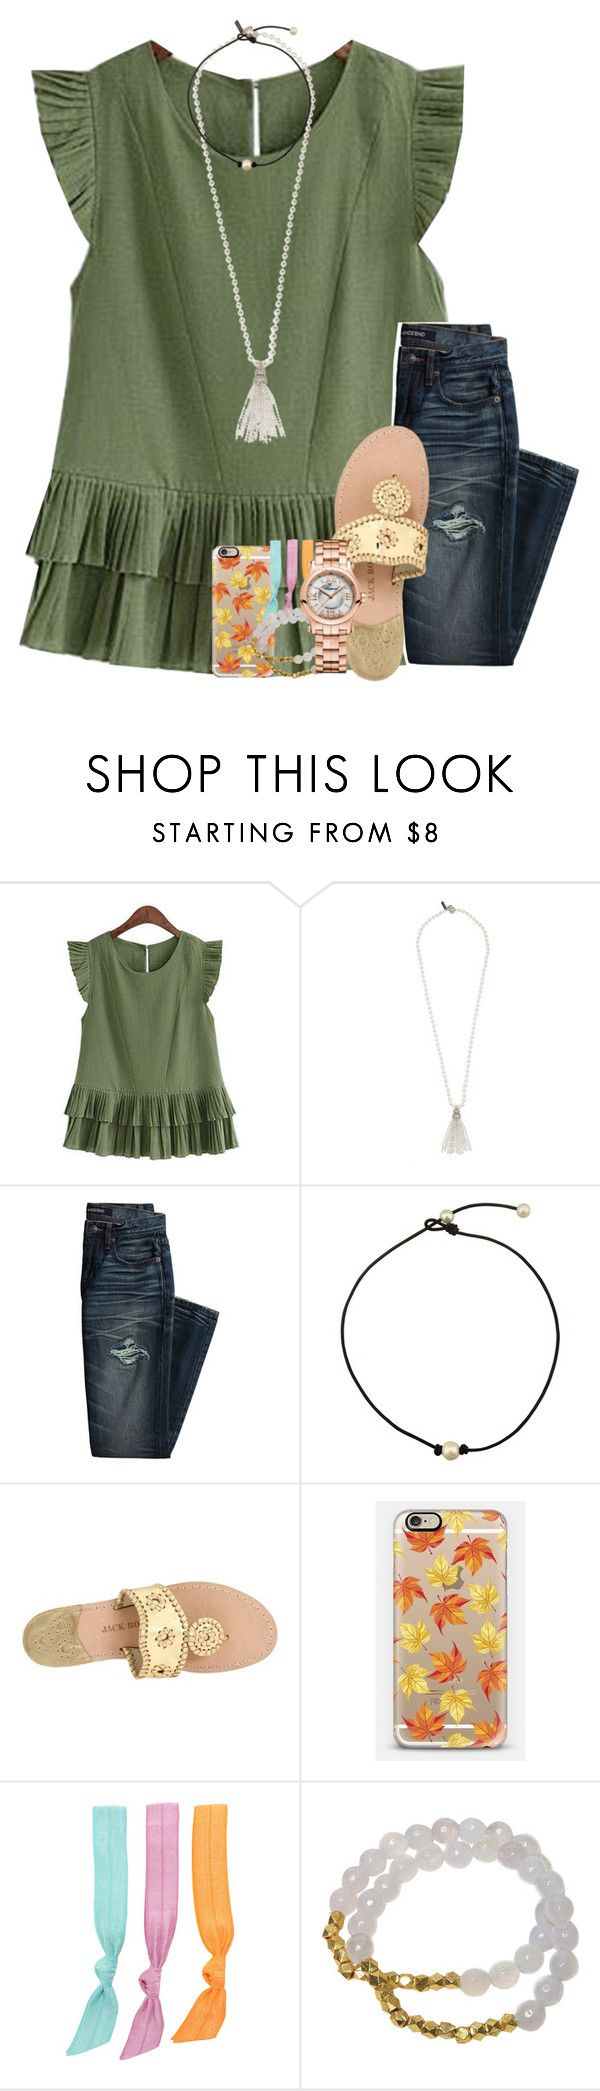 """""""almost exact ootd"""" by legitmaddywill ❤ liked on Polyvore featuring Oscar de la Renta, Canvas by Lands' End, Jack Rogers, Casetify, Splendid, Electric Picks and Chopard"""